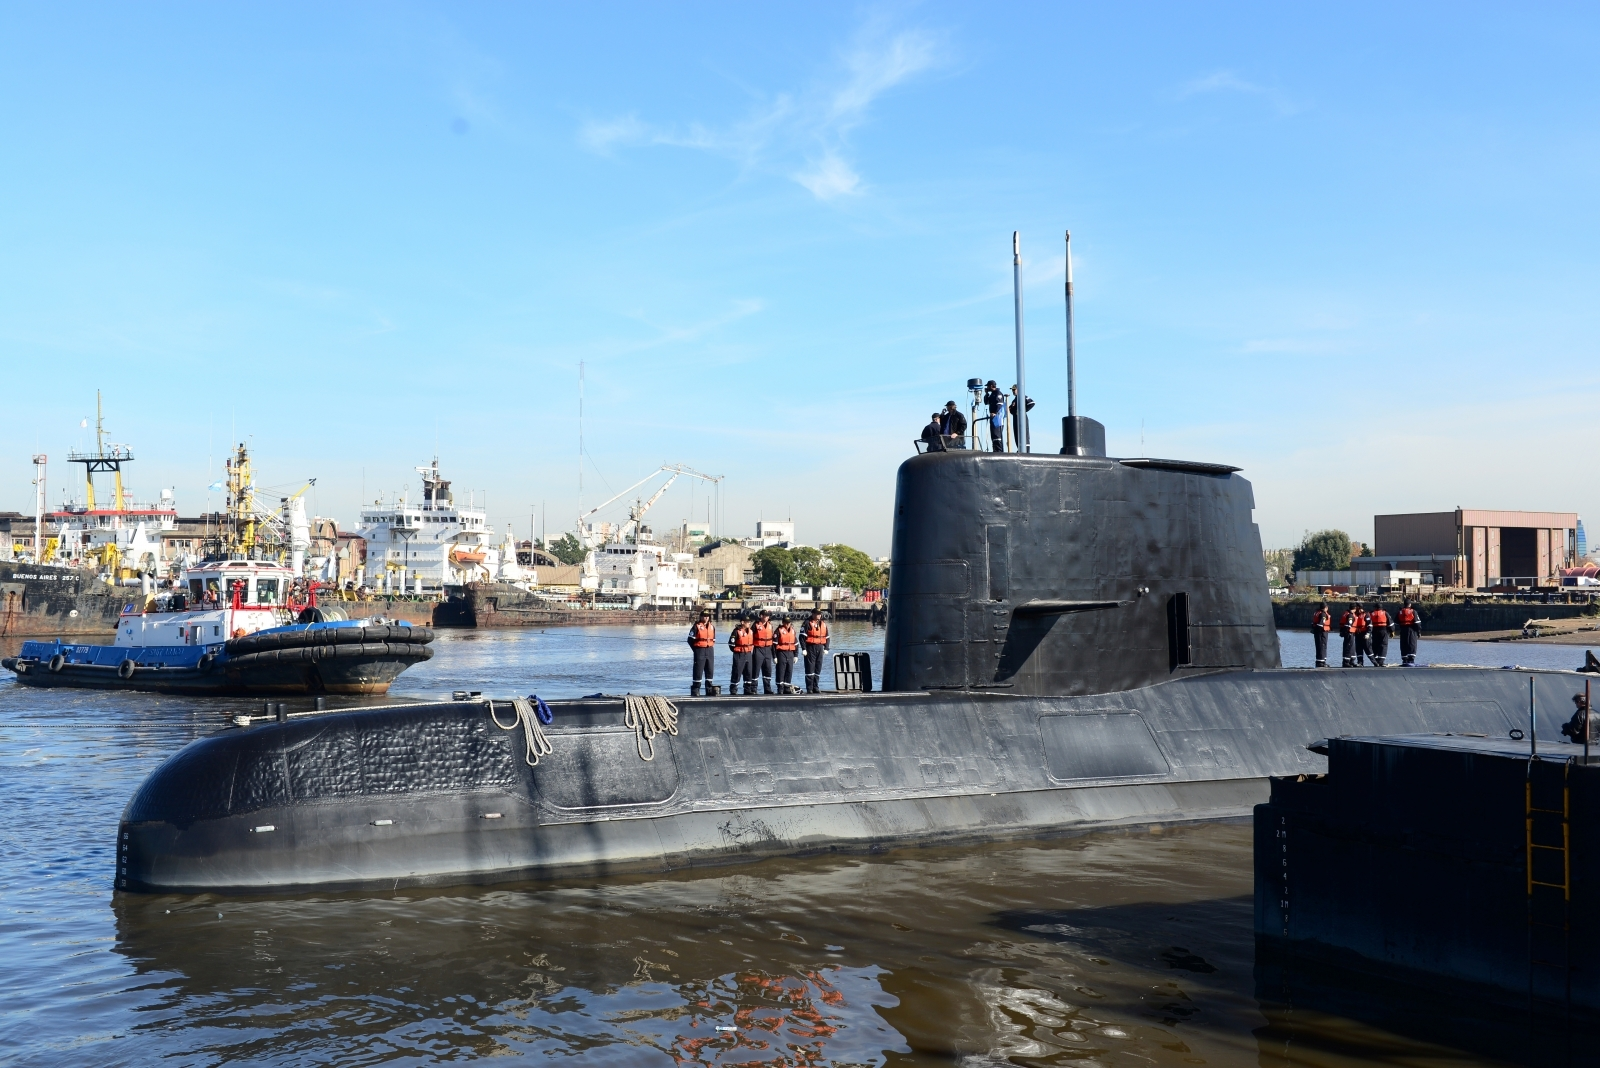 The United States assisted in the search for a missing Argentine submarine